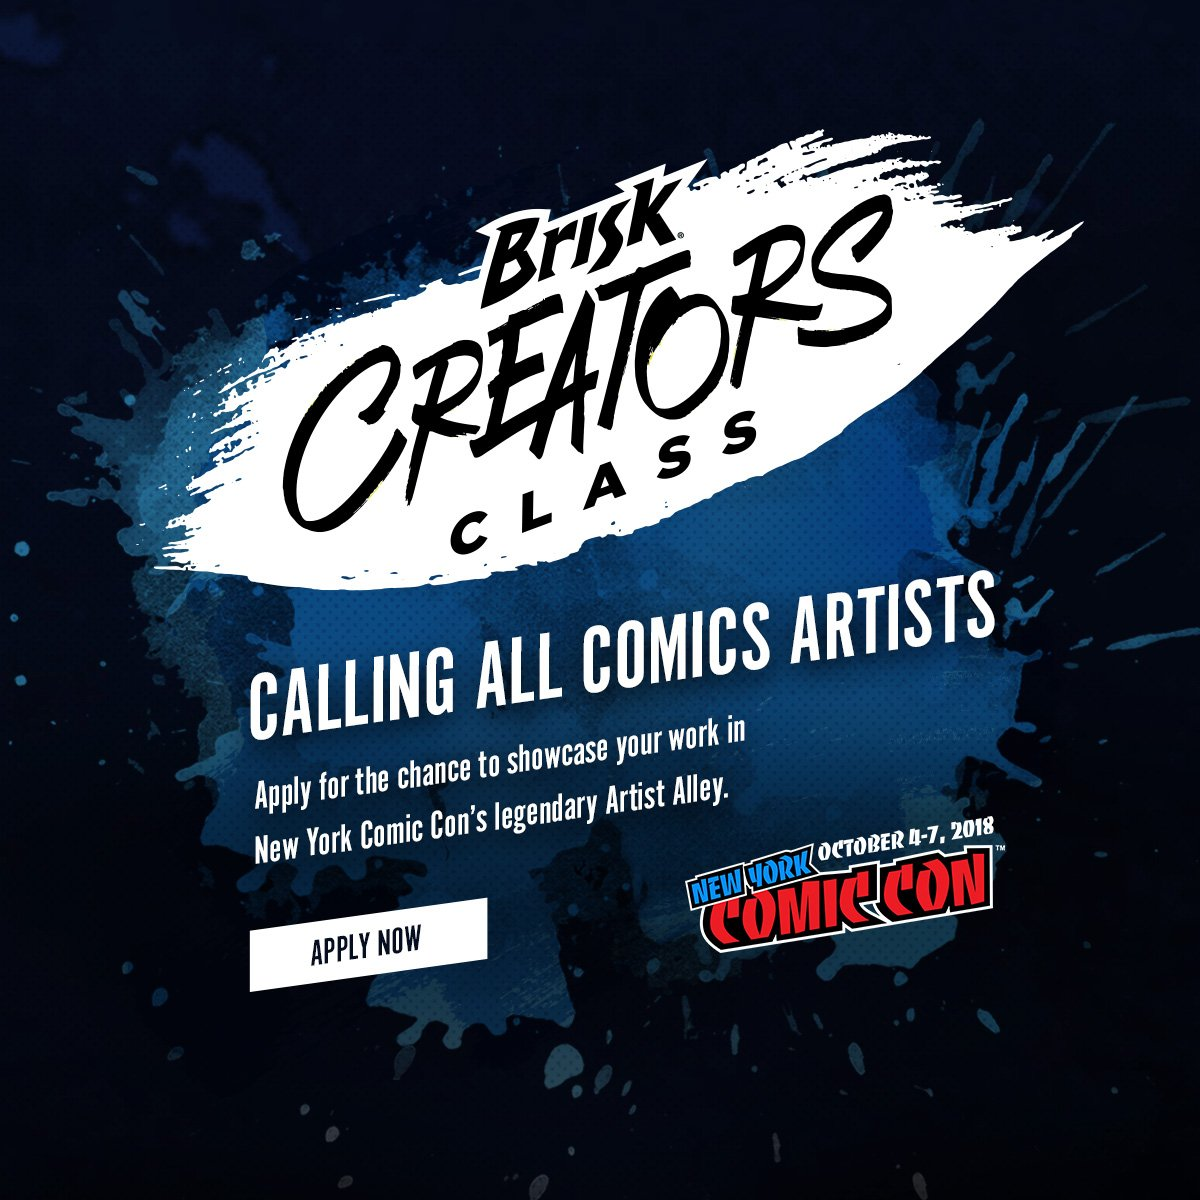 Creators assemble! We're teaming with @Brisk to give 2 artists their big break at #NYCC 2018 Artist Alley. If making visual art inspired by comics, manga, or graphic novels is your superpower, enter your favorite original art at the #CreatorsClass: https://t.co/BkmEg8Ty65. #Promo